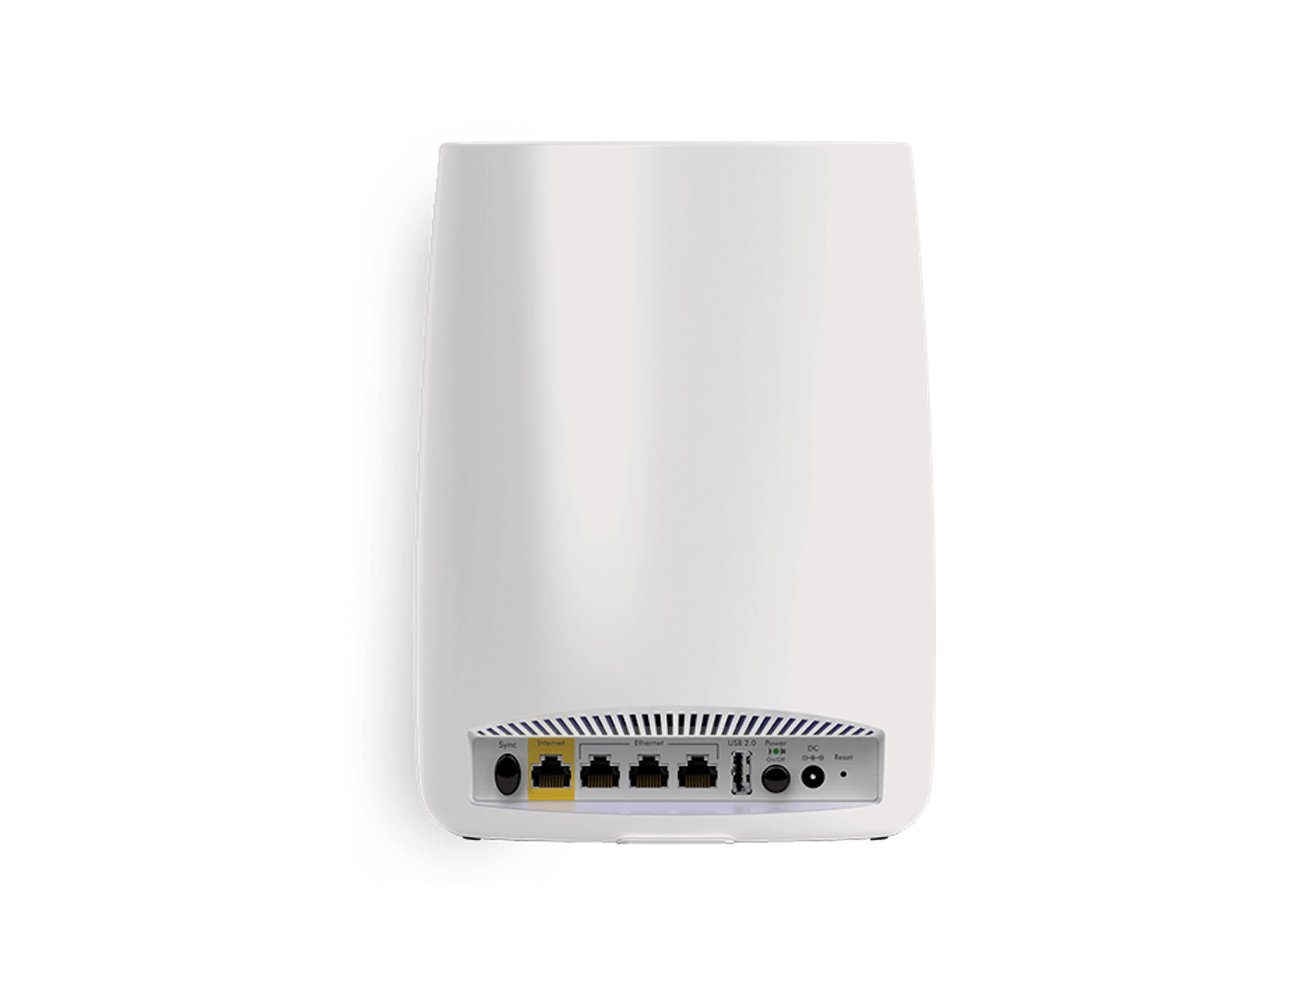 Netgear Orbi Tri-Band Cable Modem Router